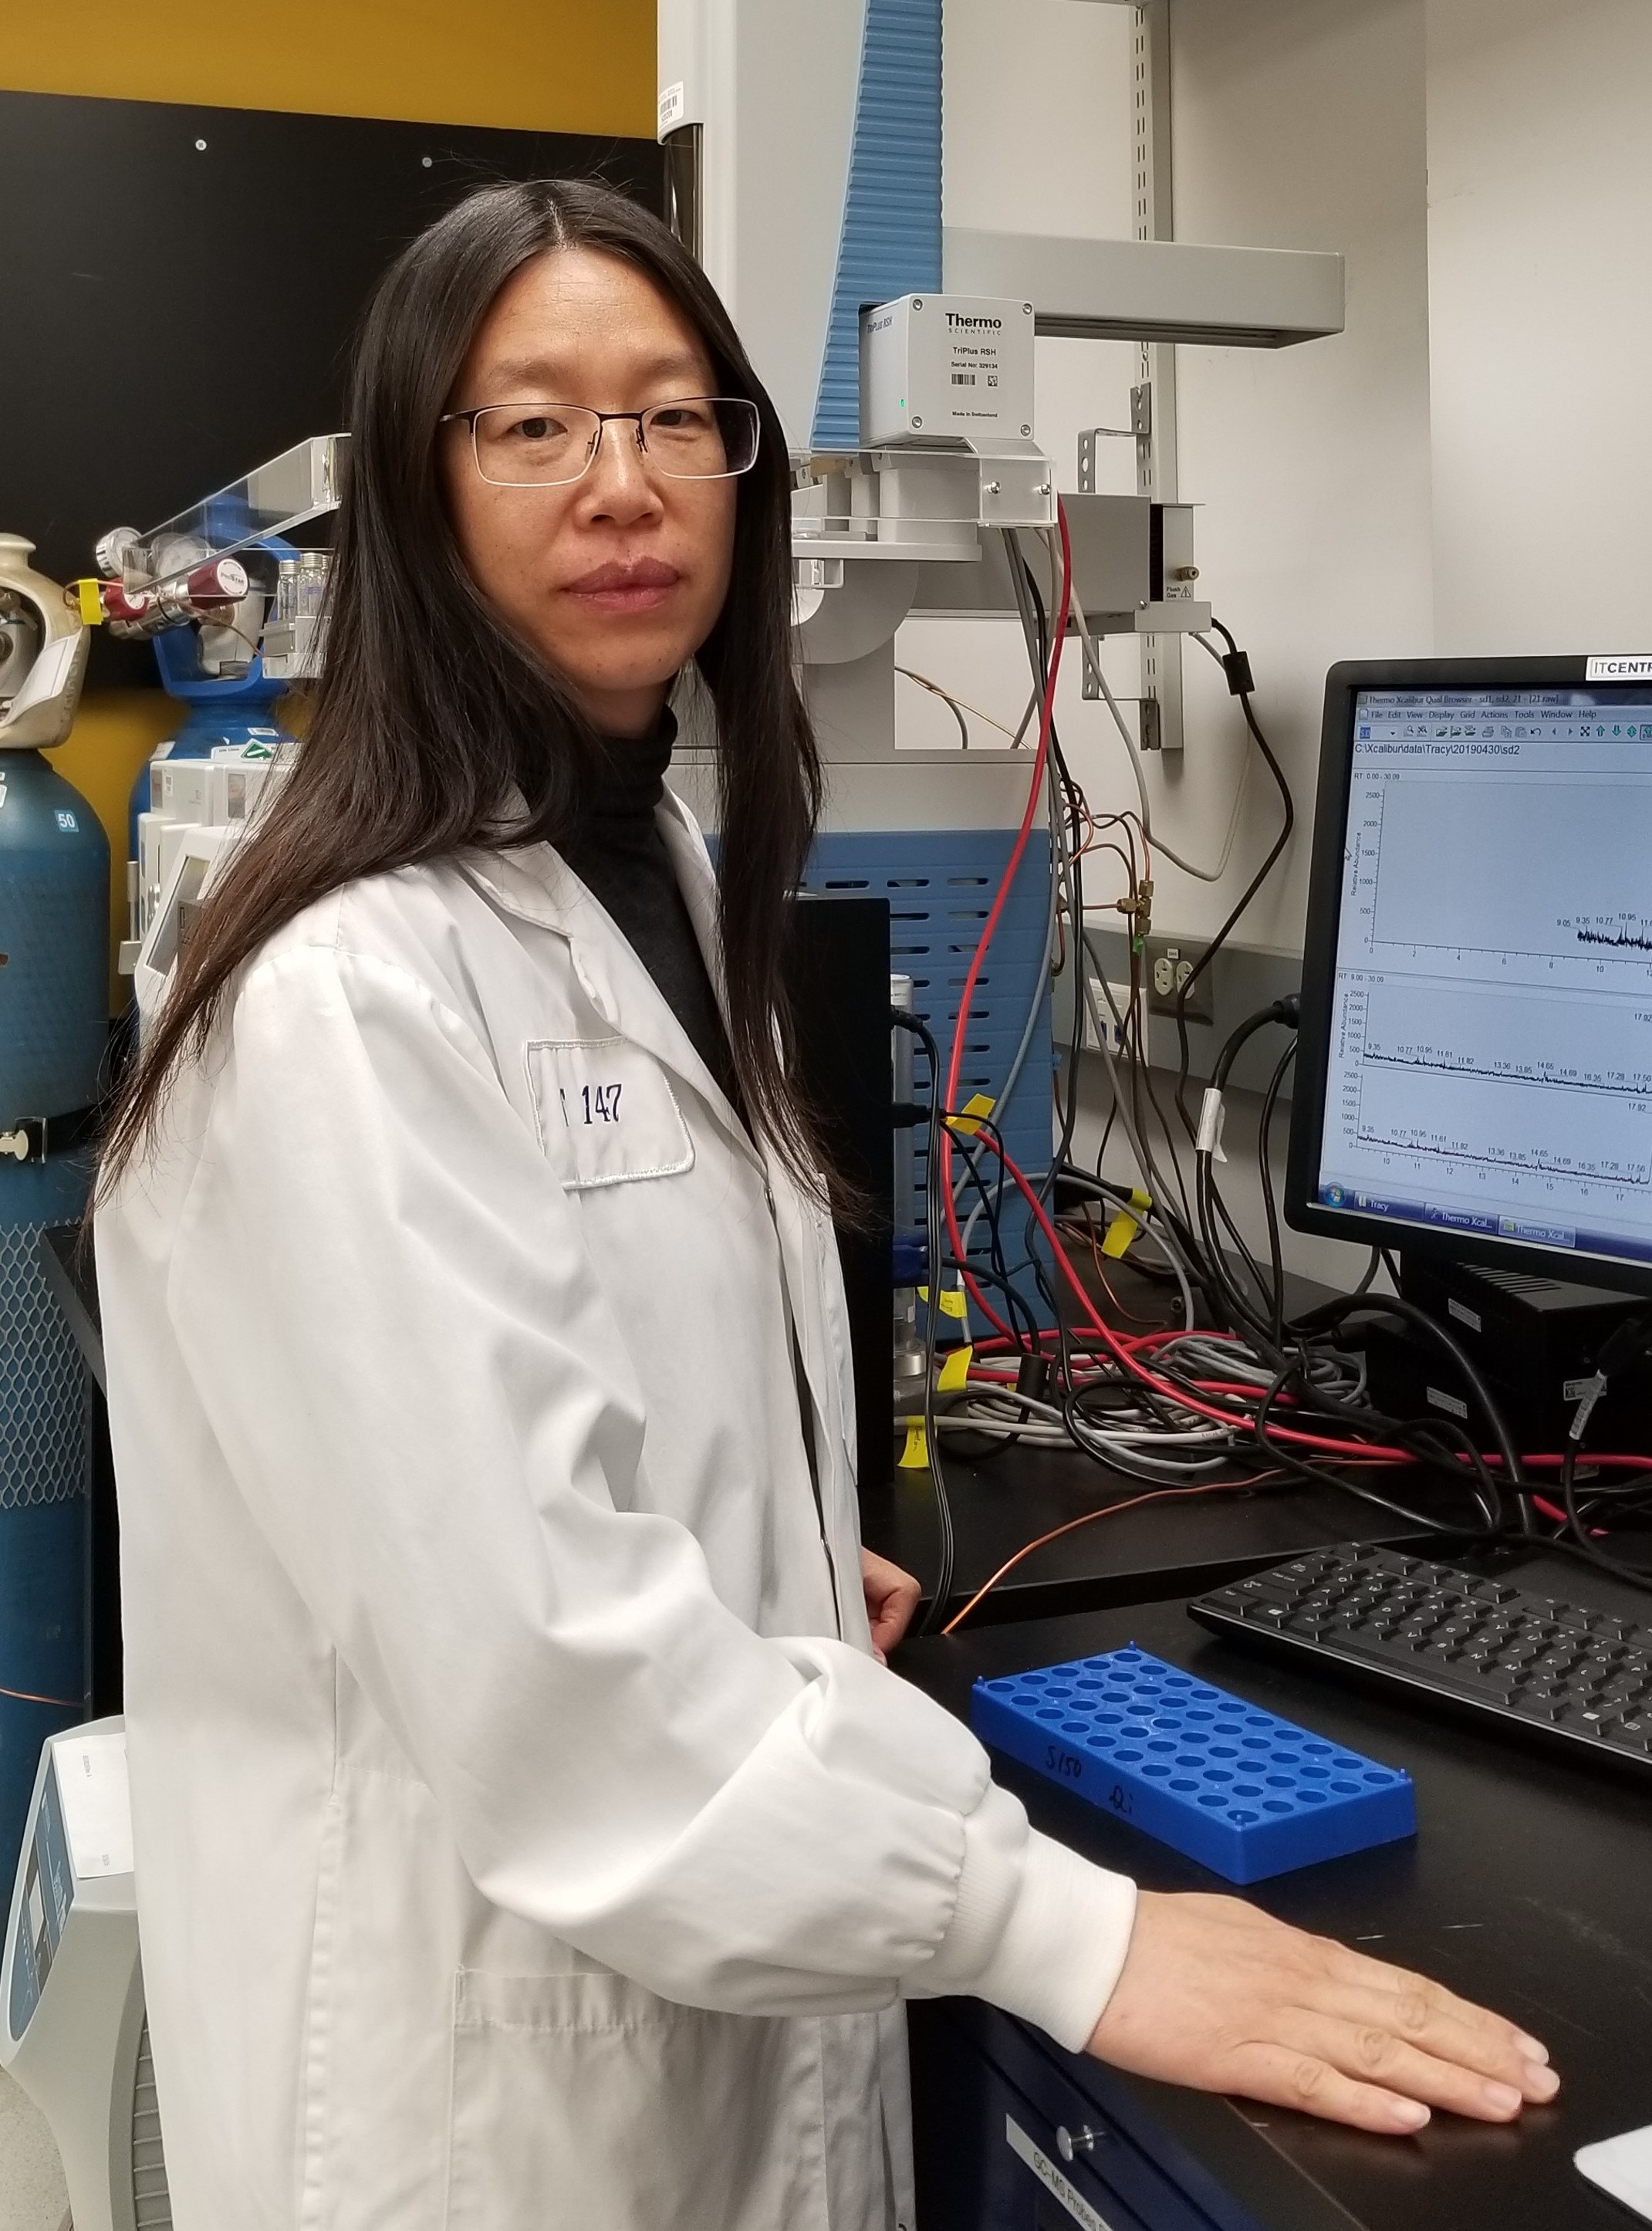 Dr. Suqin Shao standing at a computer in her laboratory